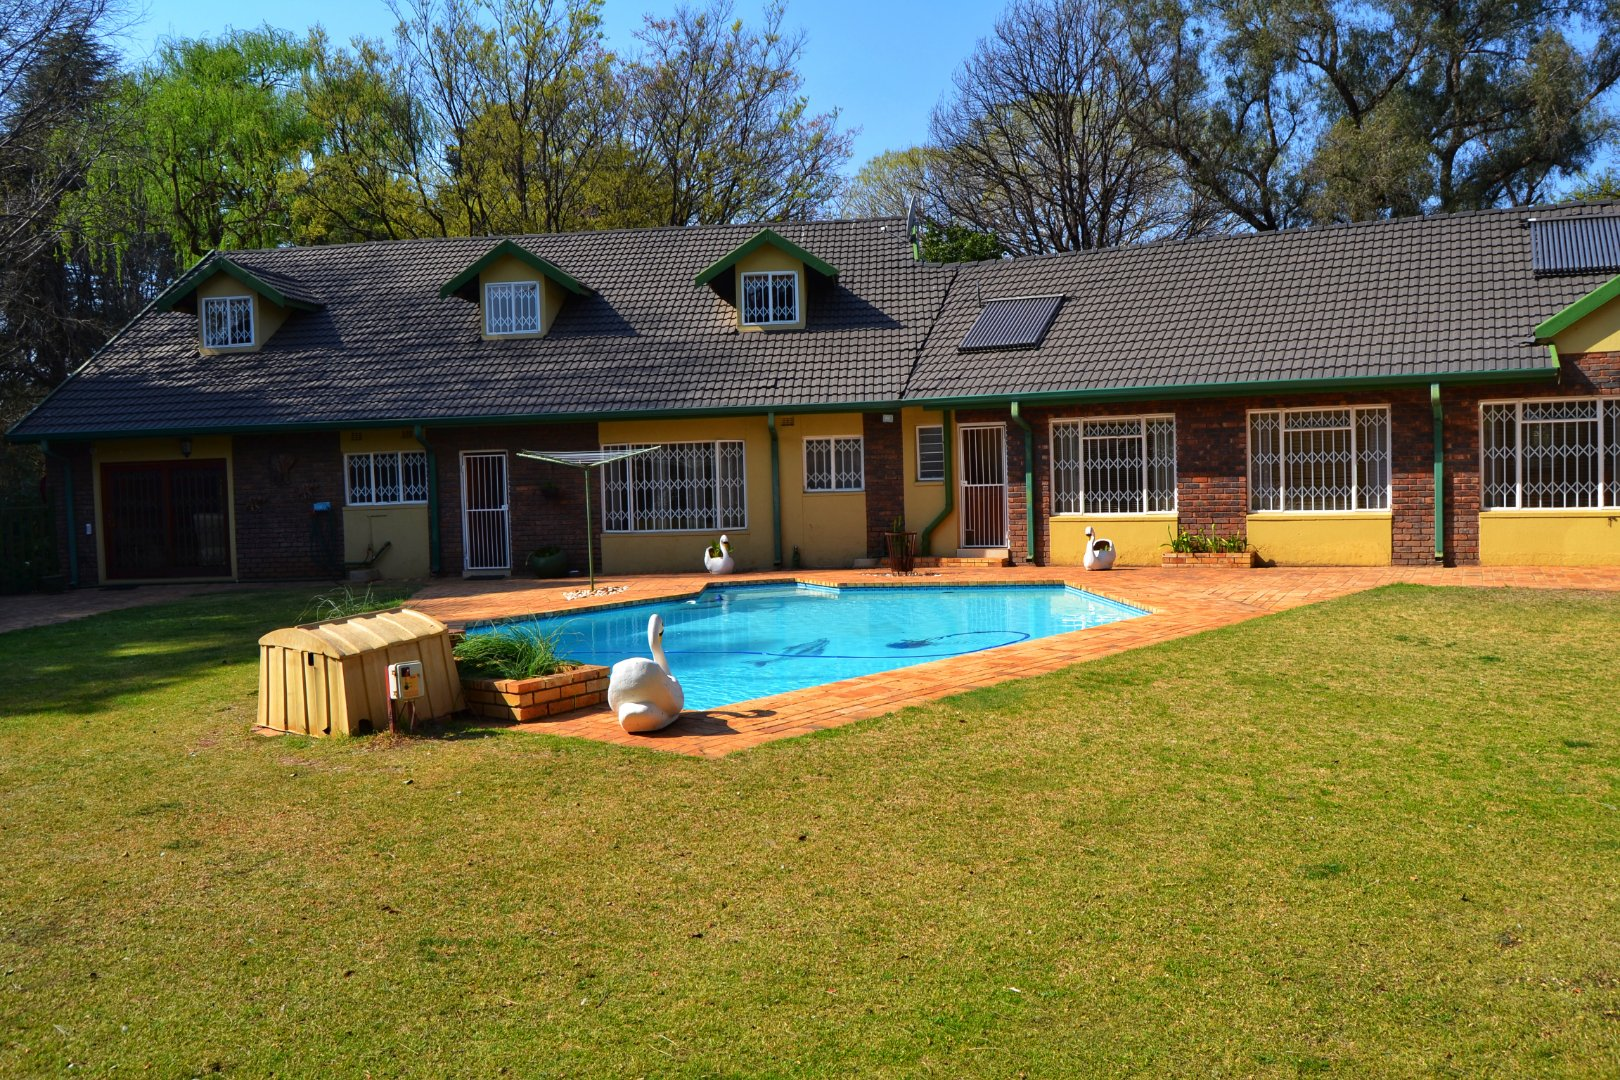 Property and Houses for sale in Gauteng - Page 3, House, 5 Bedrooms - ZAR 999,999,999